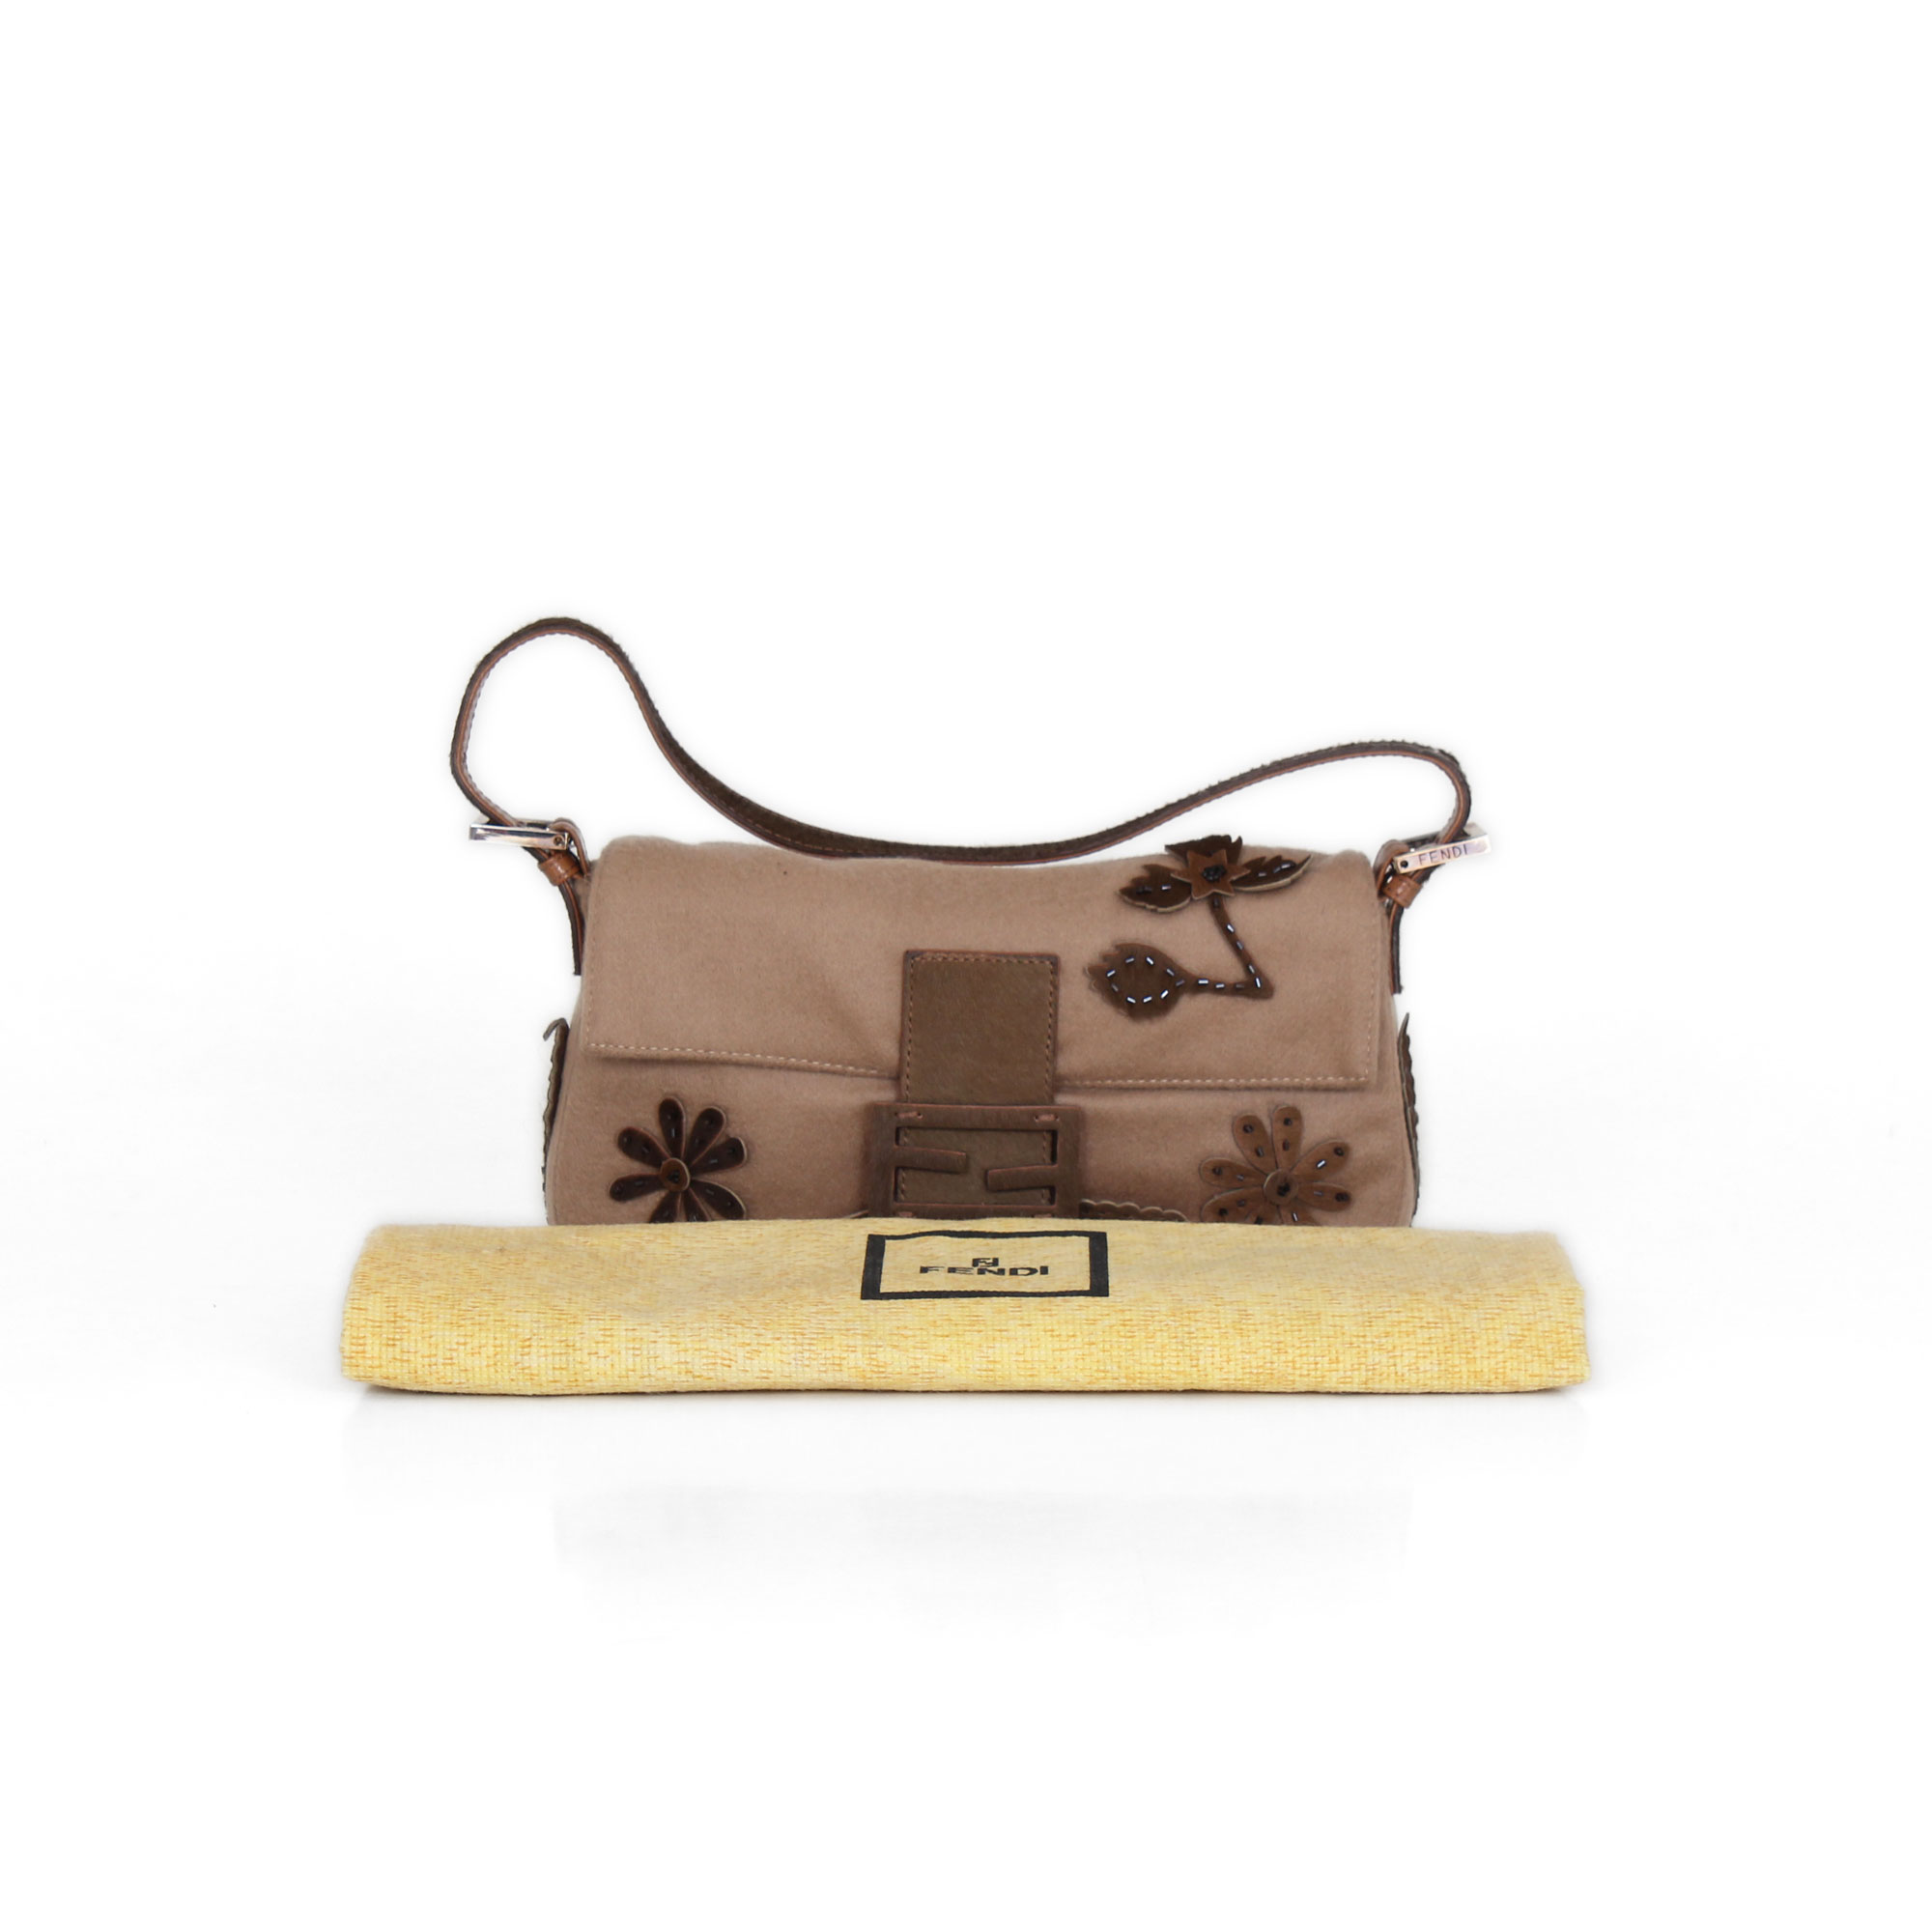 fd56f3a54 Buy and sell second hand bags   Fendi Baguette   CBL Bags